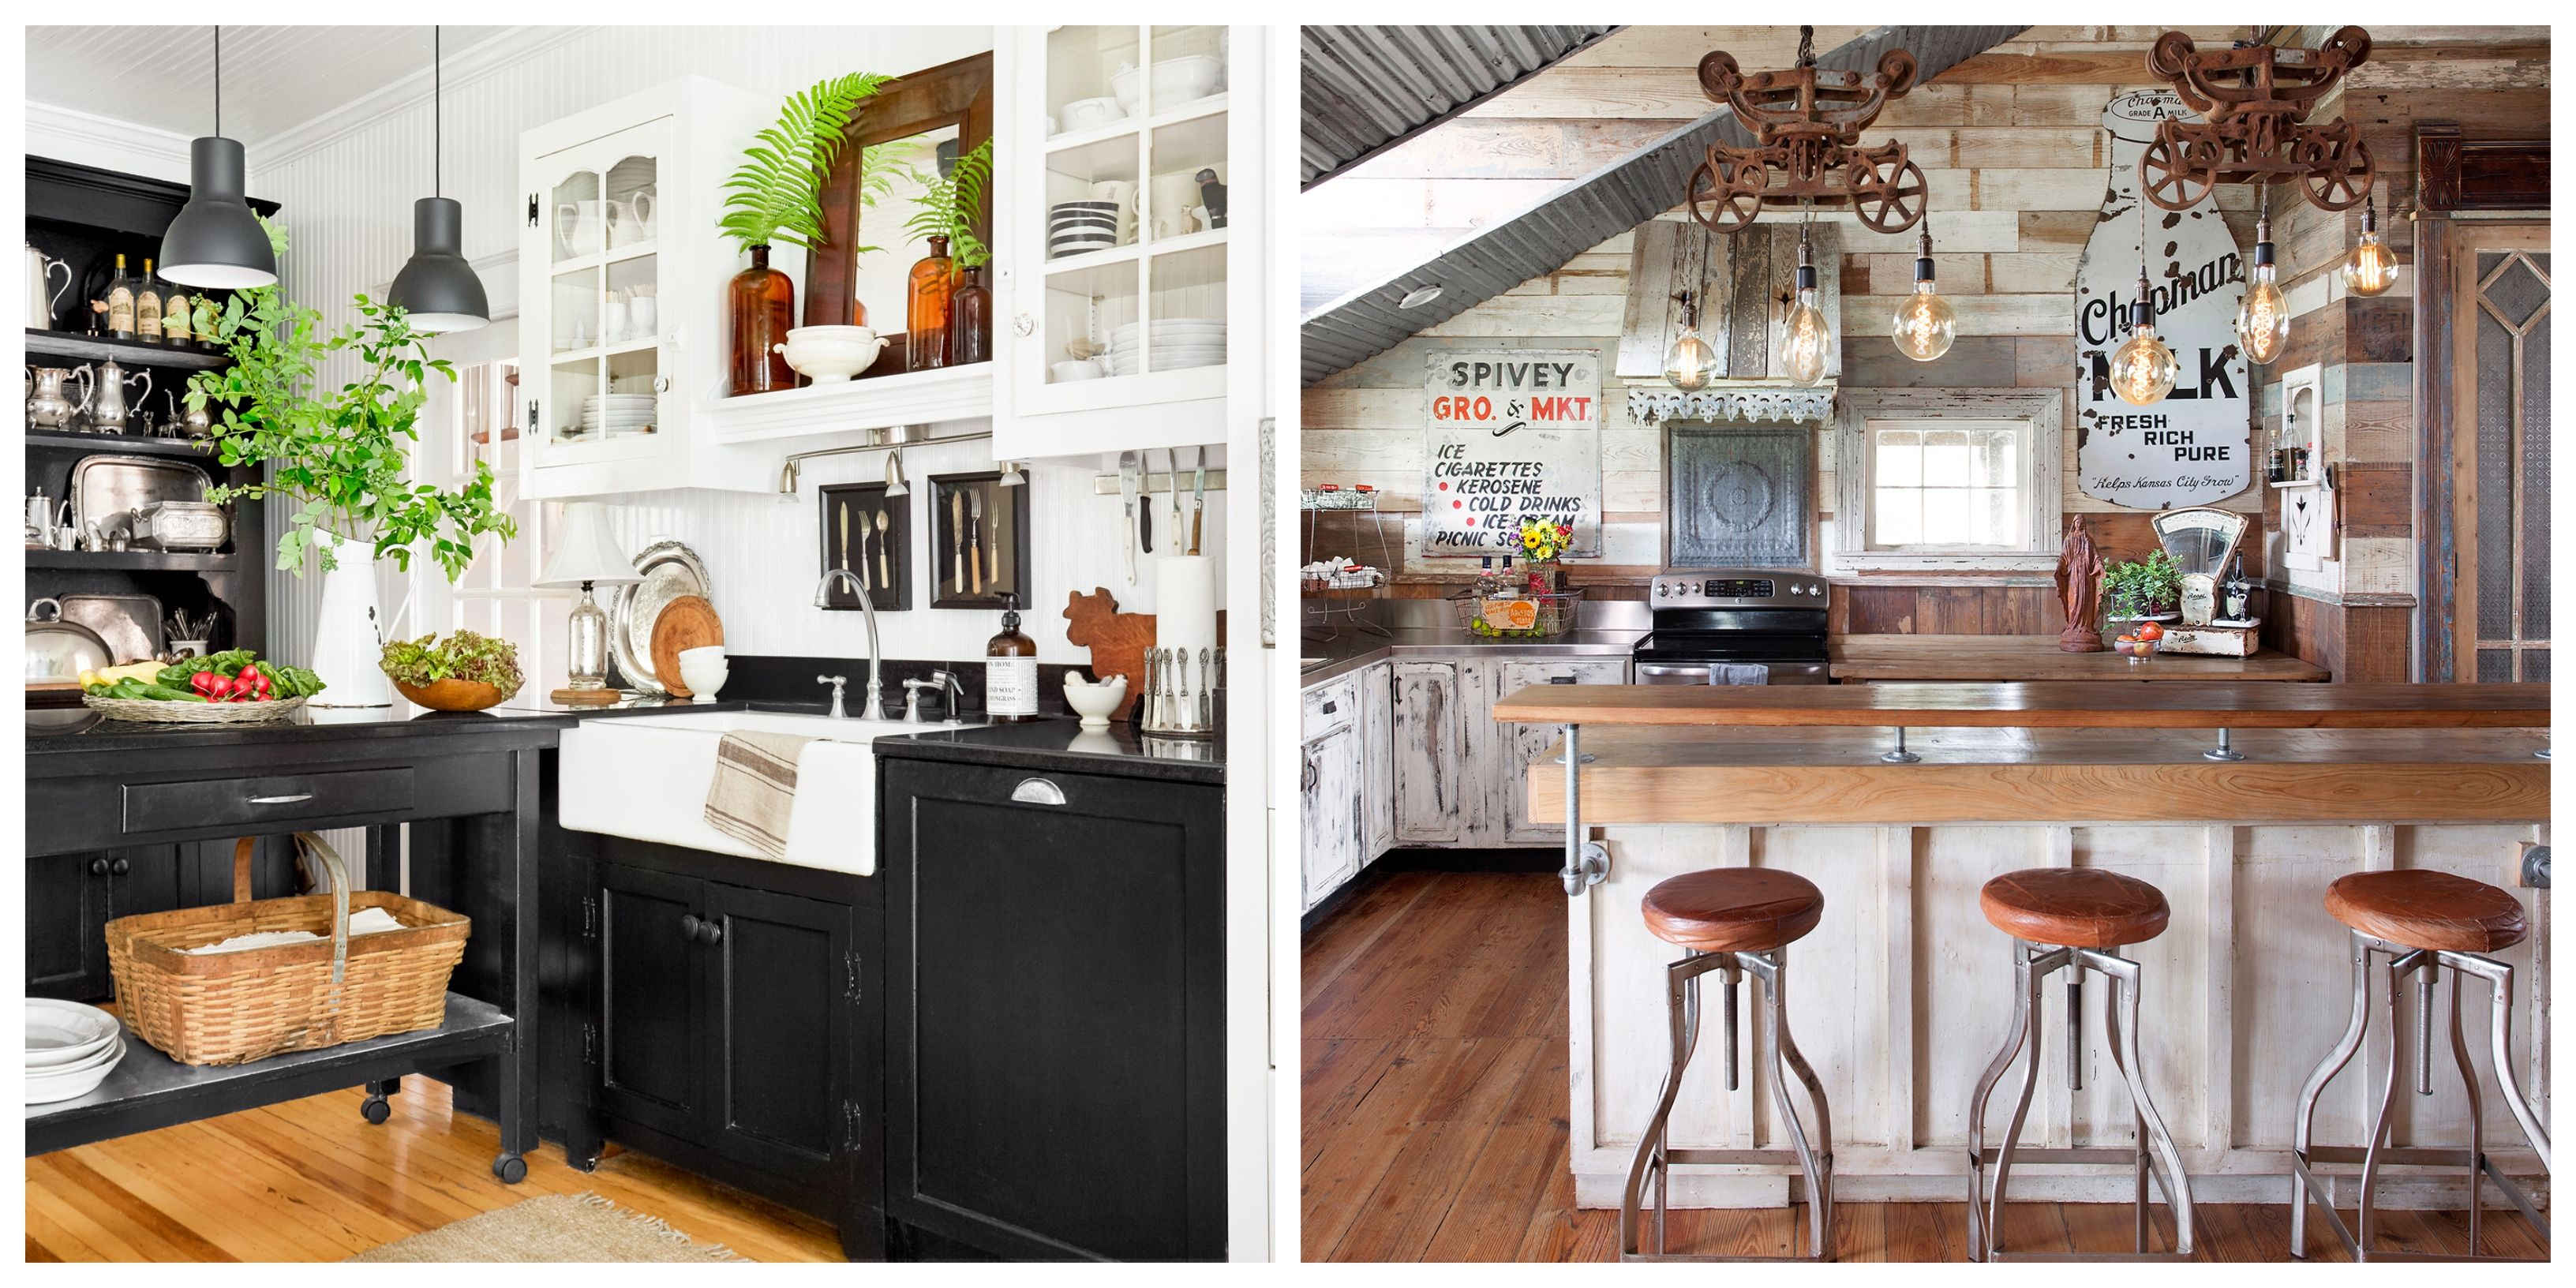 34 Farmhouse Style Kitchens – Rustic Decor Ideas For Kitchens Throughout Personalized Distressed Vintage Look Kitchen Metal Sign Wall Decor (View 24 of 30)